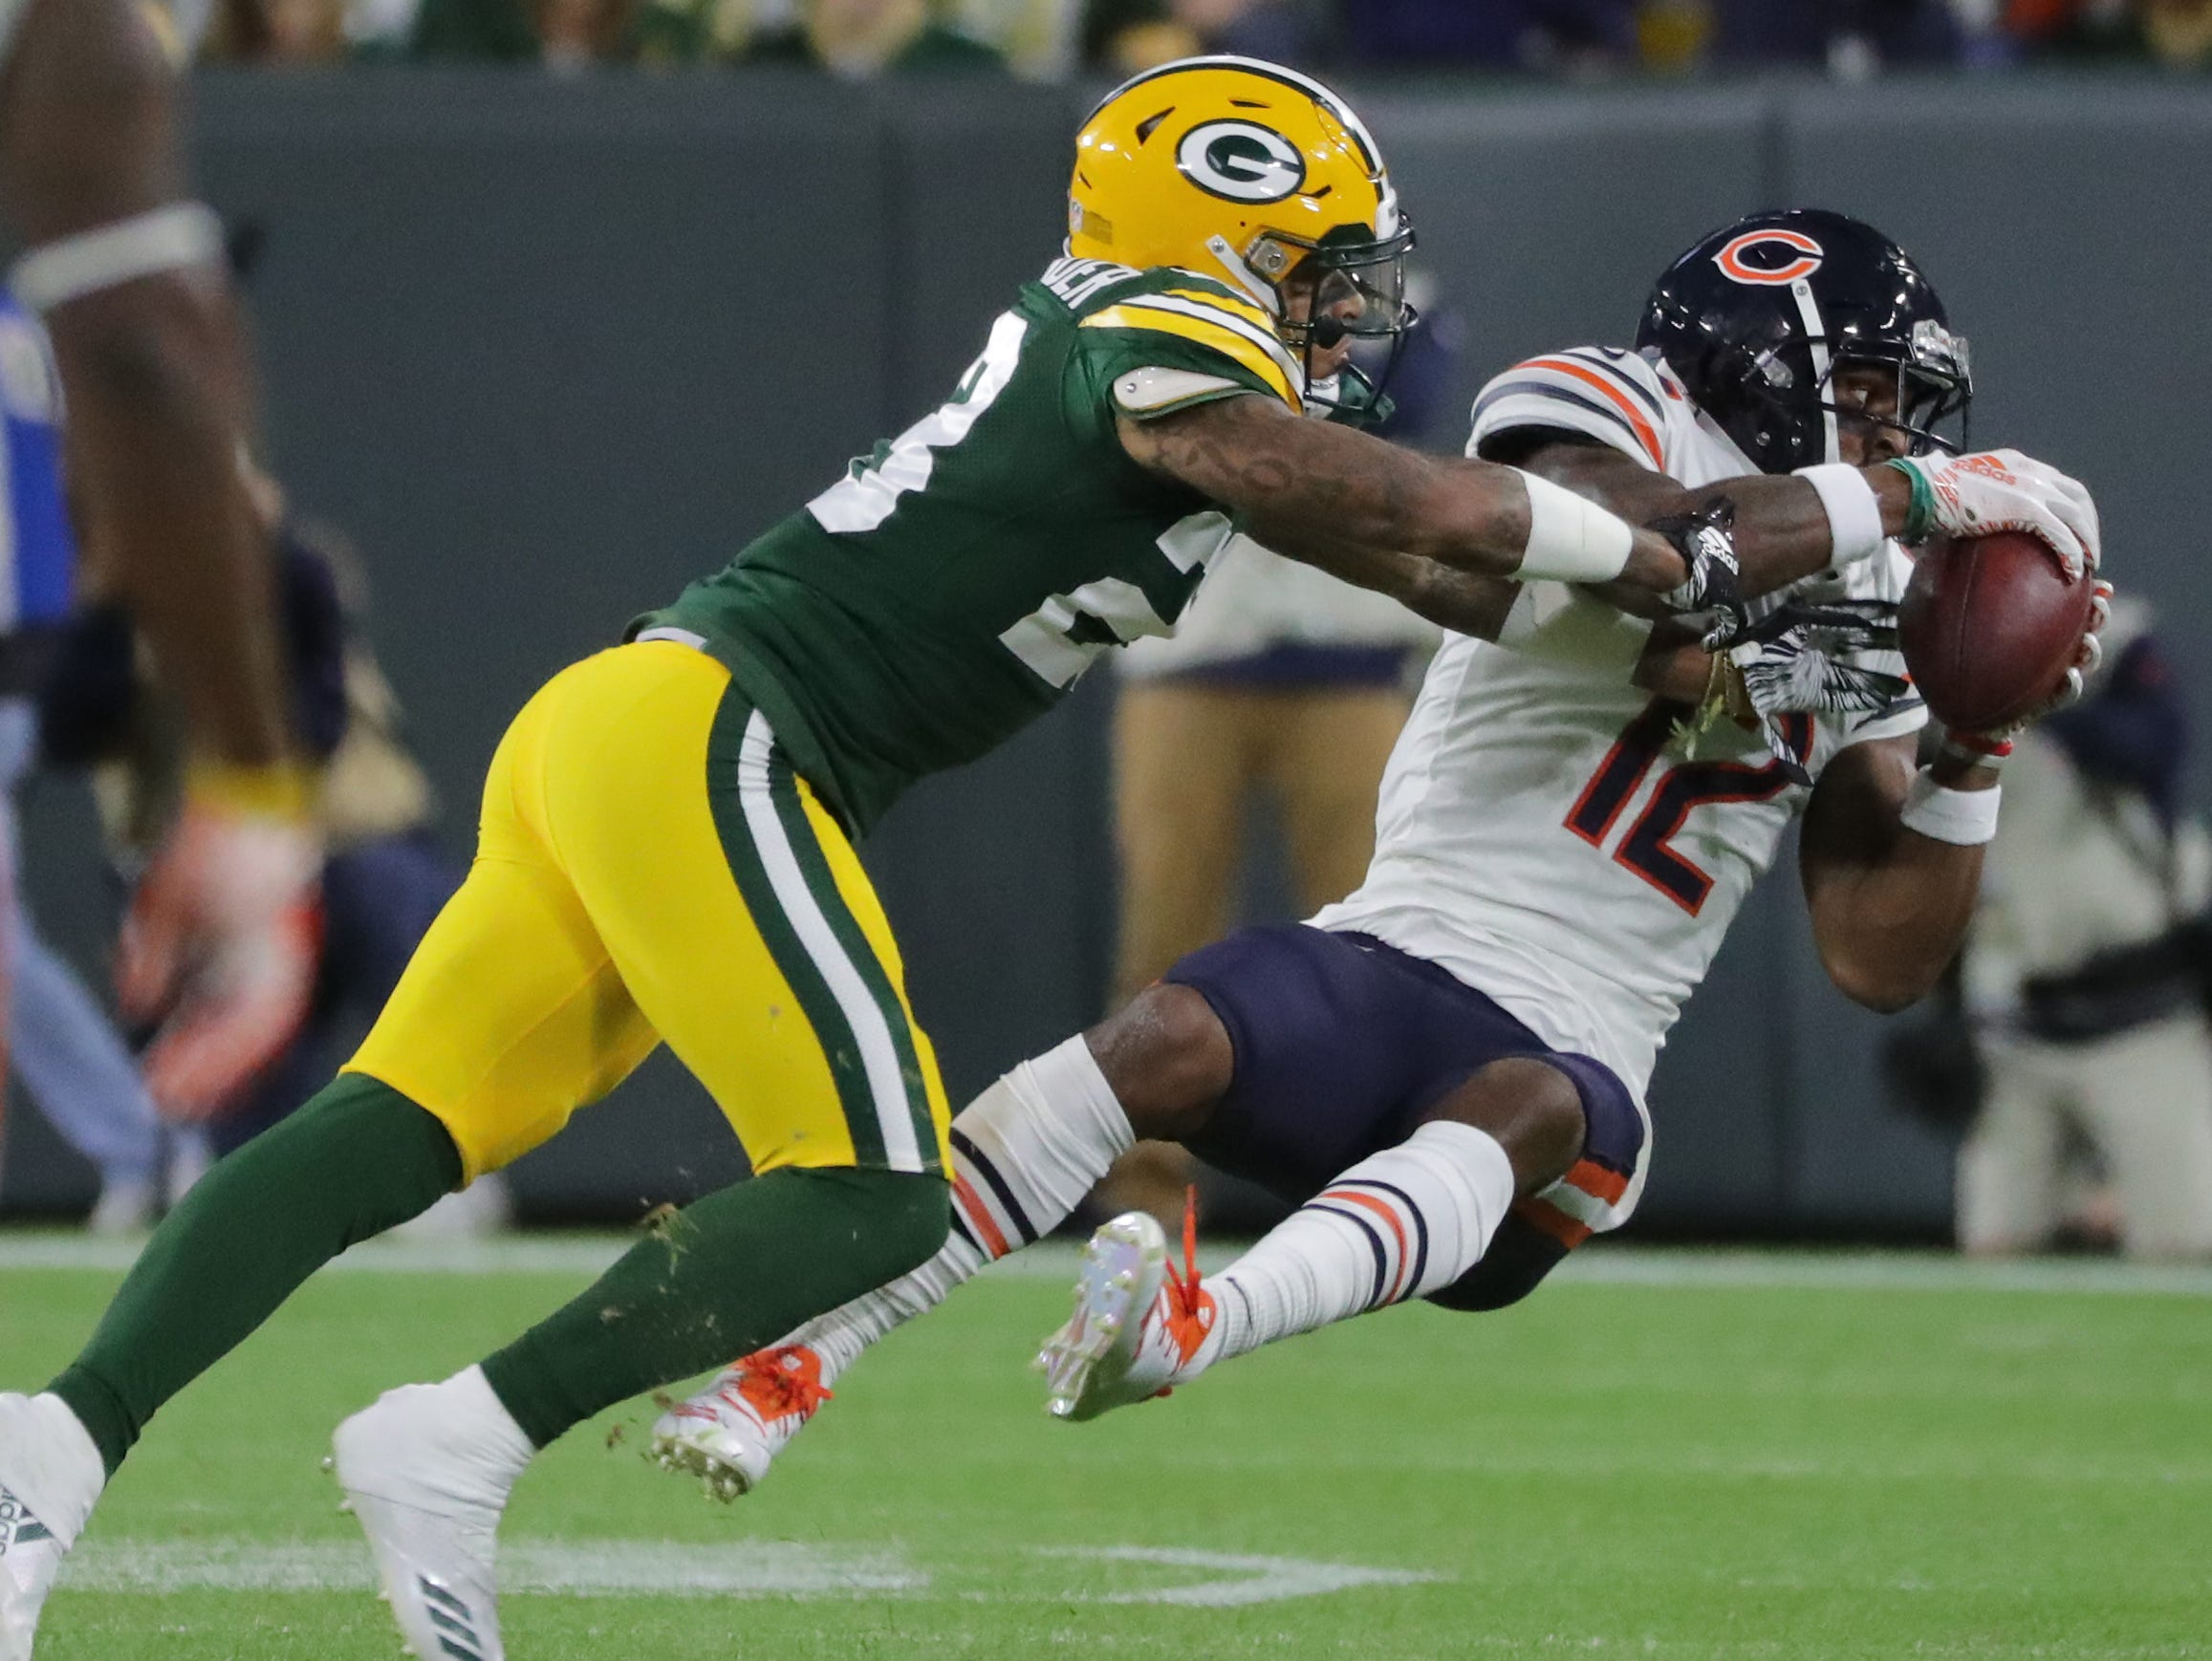 Chicago Bears wide receiver Allen Robinson (12) snares a 33-yard reception while being covered by Green Bay Packers cornerback Jaire Alexander (23) during the first  quarter of their game Sunday, September 9, 2018 at Lambeau Field in Green Bay, Wis.